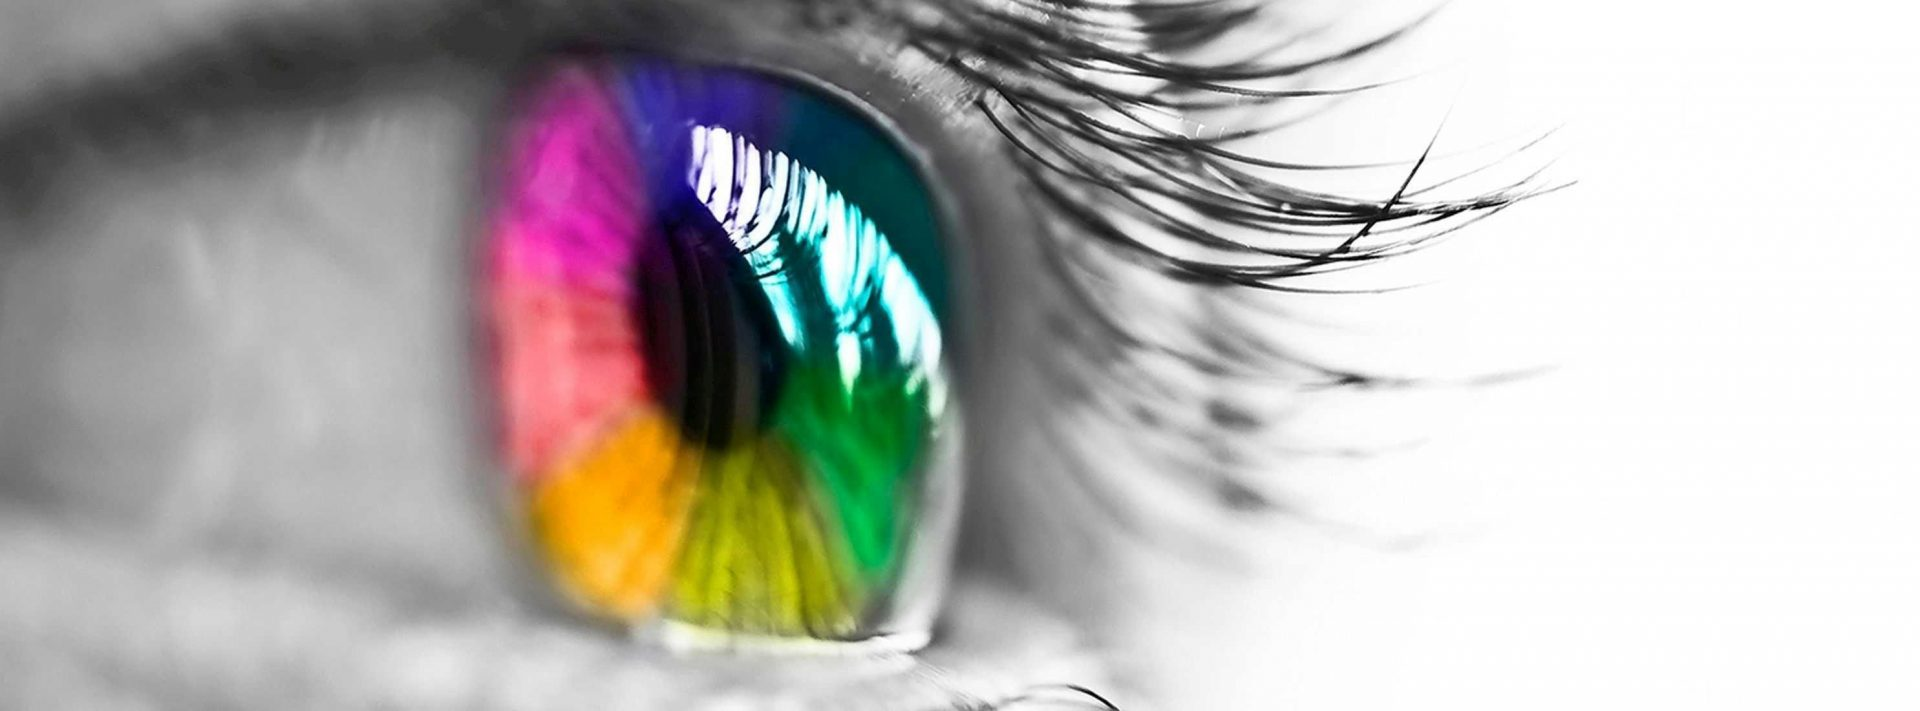 Contact Lenses: color Contact Lenses for fashion